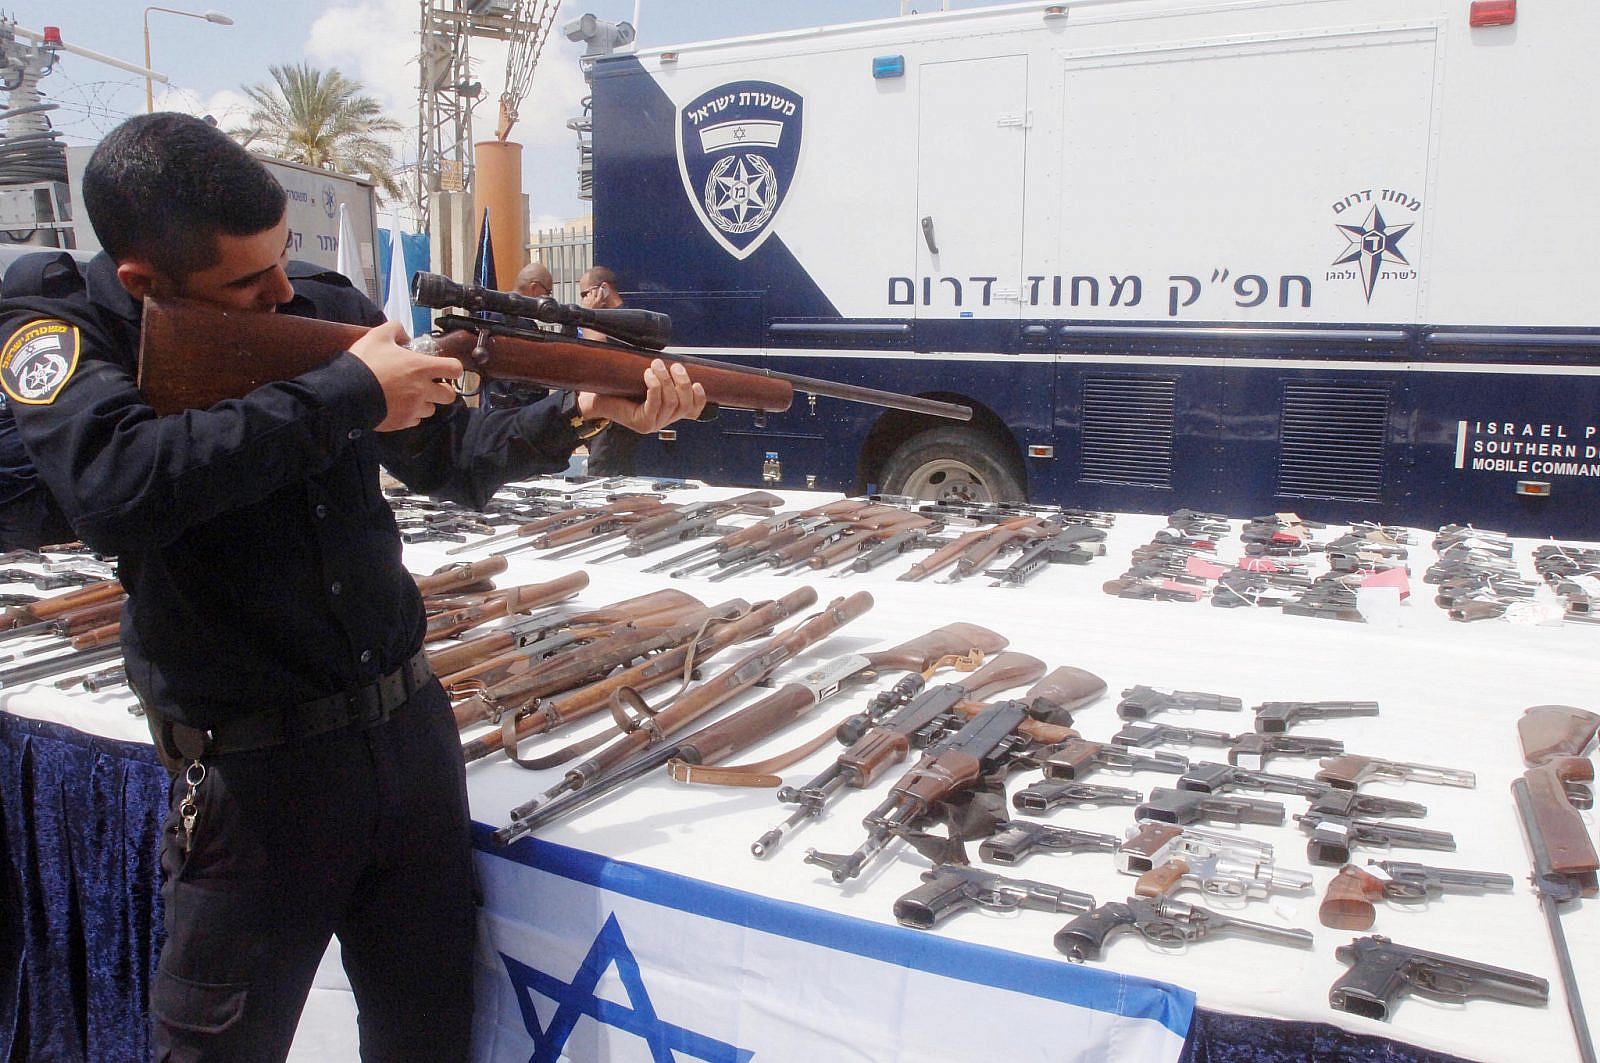 Illegal firearms seized by Israeli police during 'Operation Law and Order,' seen on display at the Police Southern District, April 10, 2014. (Flash90)